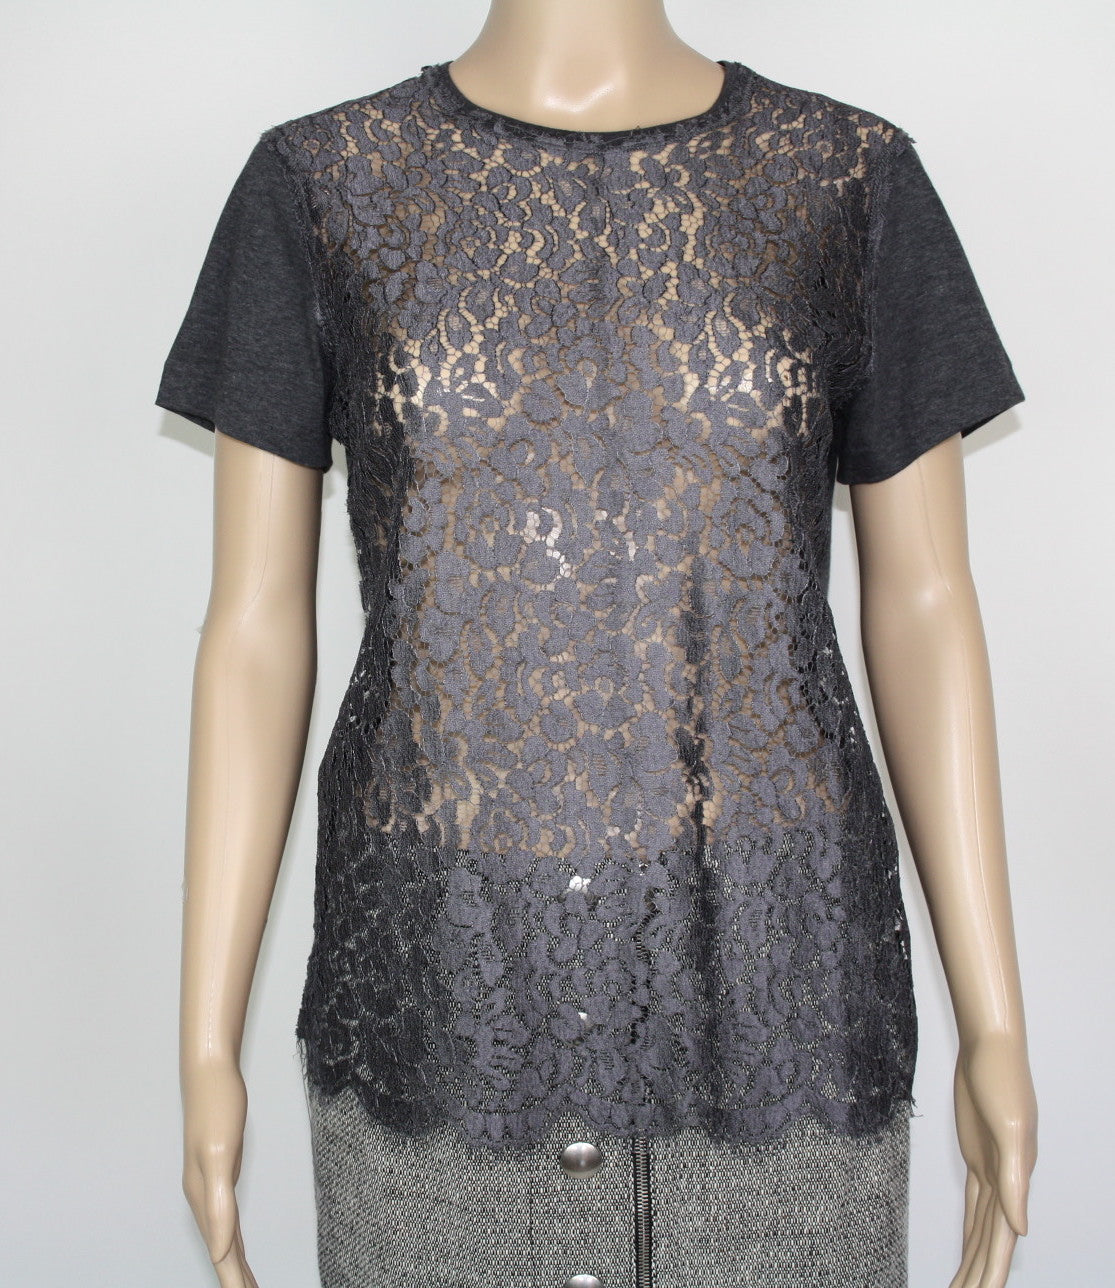 Dolce & Gabbana Top, 44 - Iconics Preloved Luxury